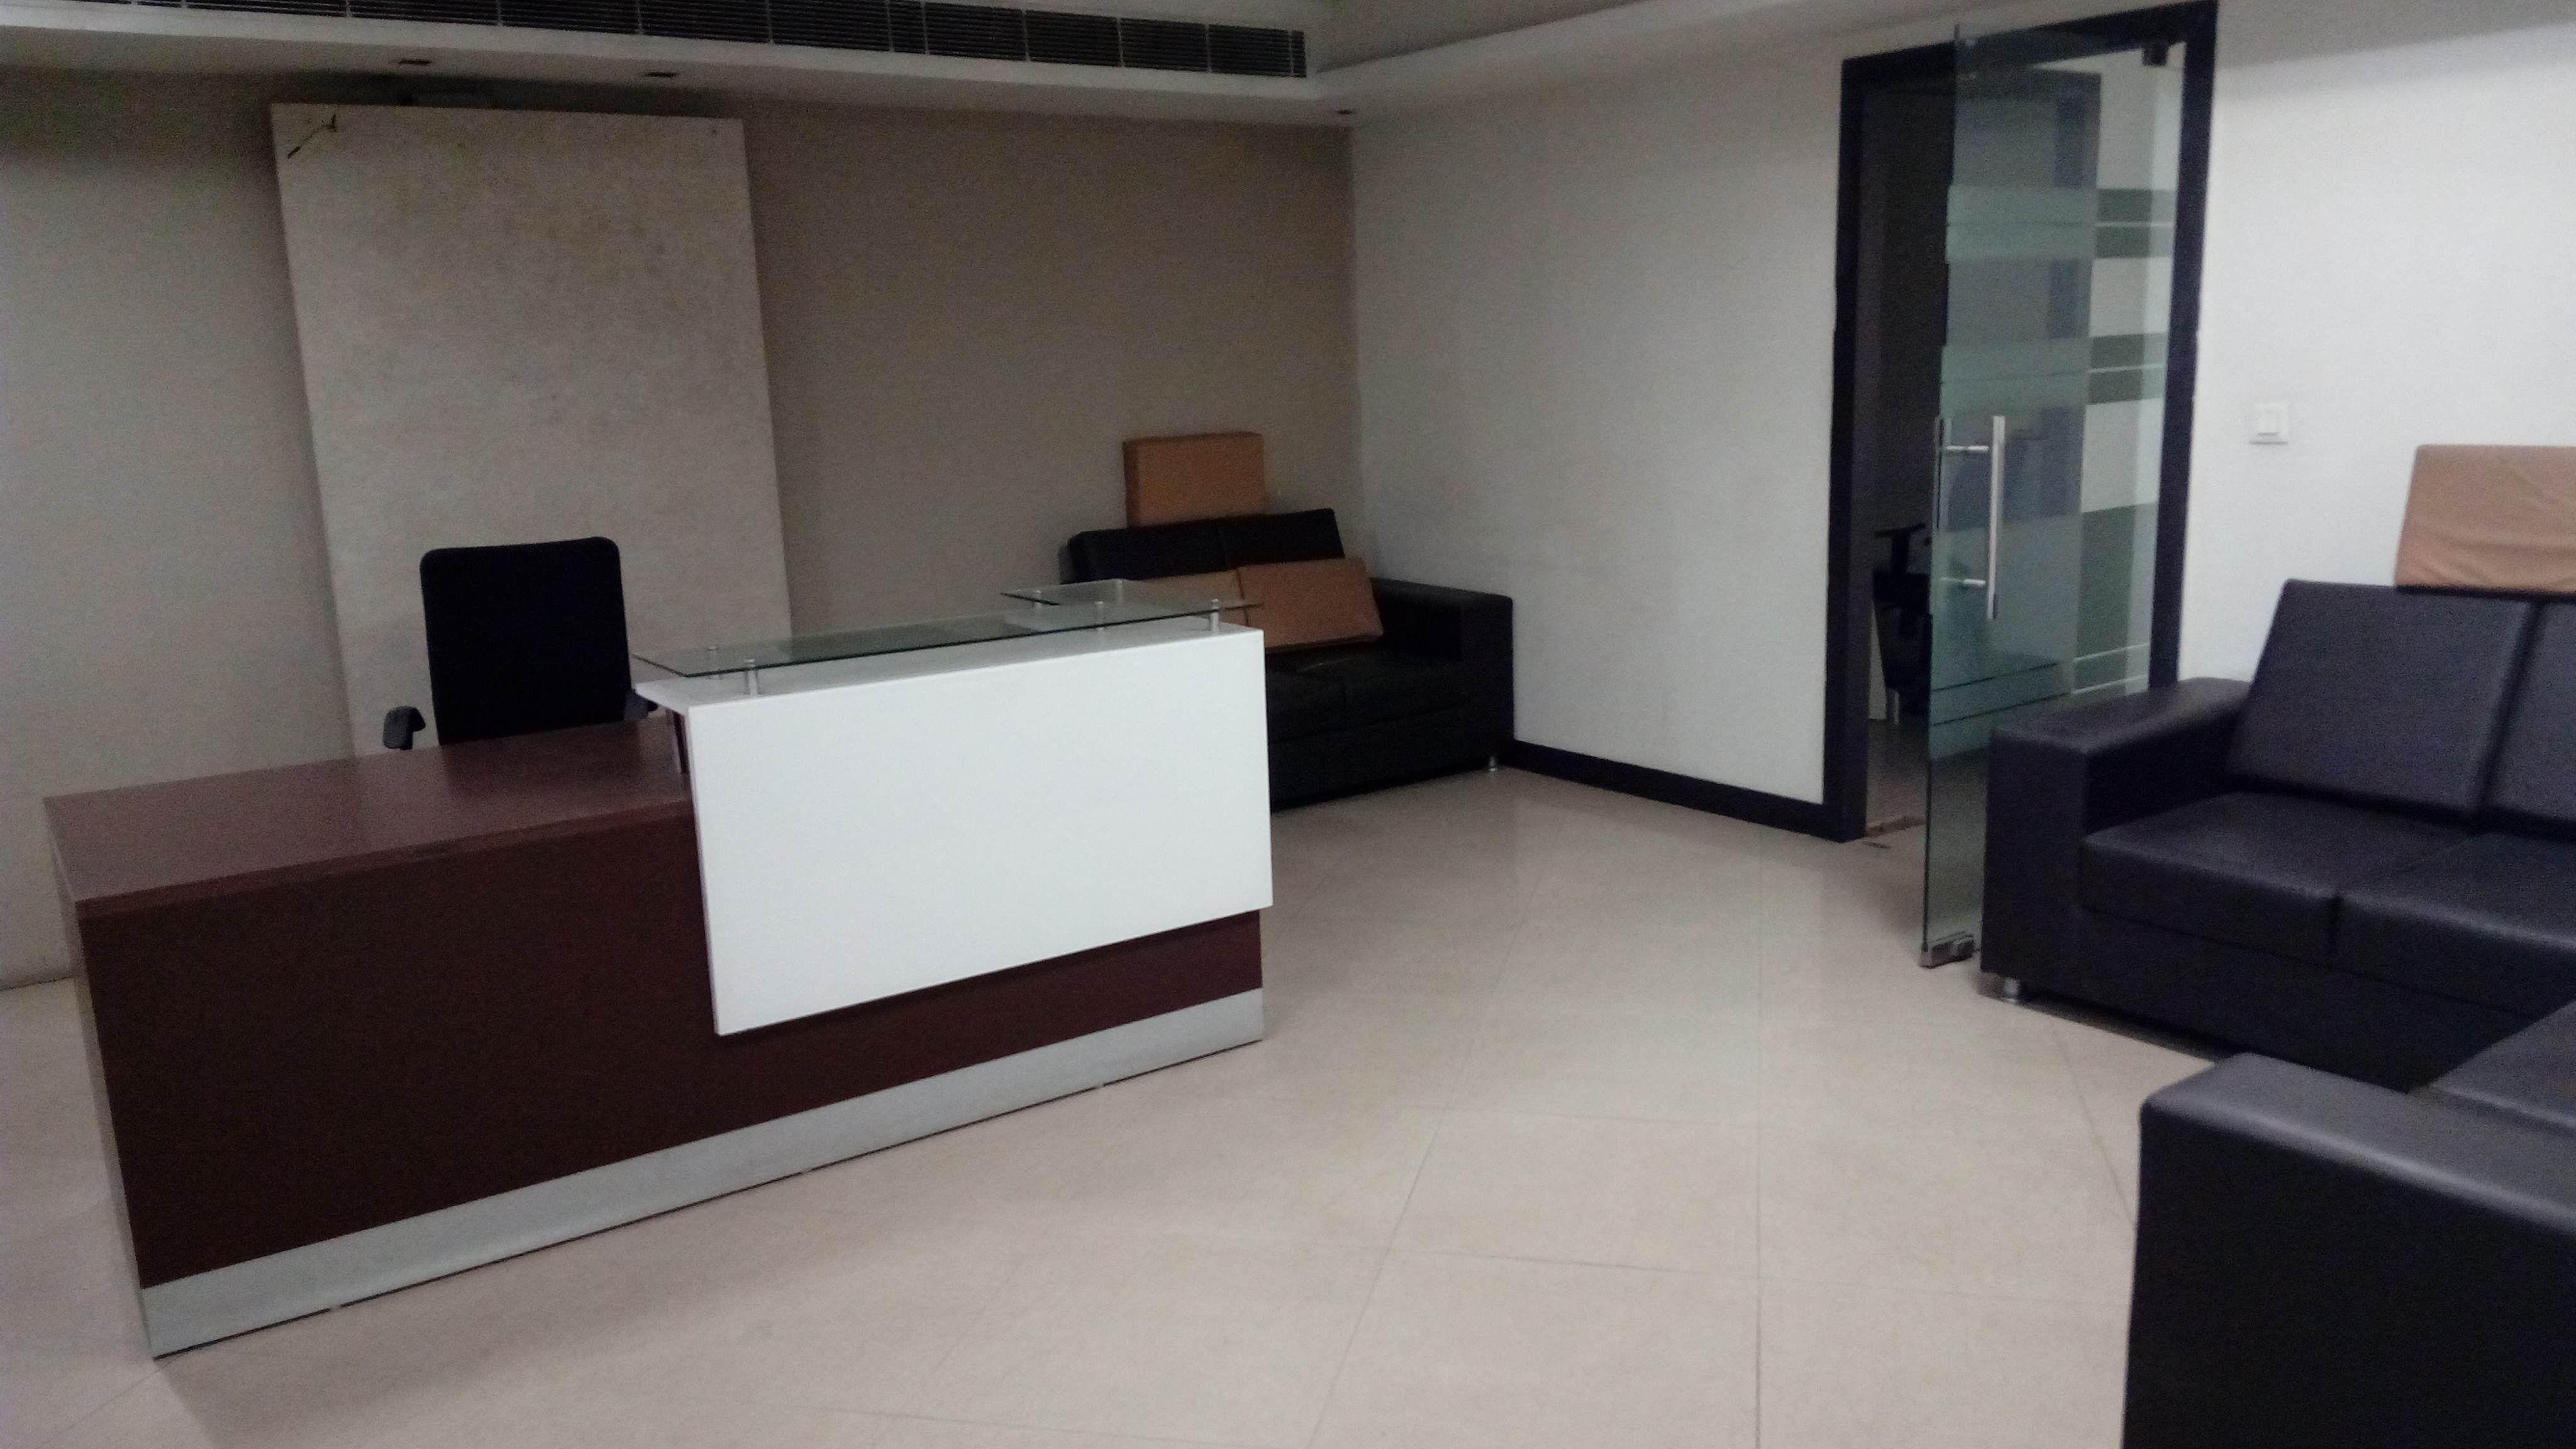 estate for haltom fwy img rds to office building commercial space lease airport city real rent